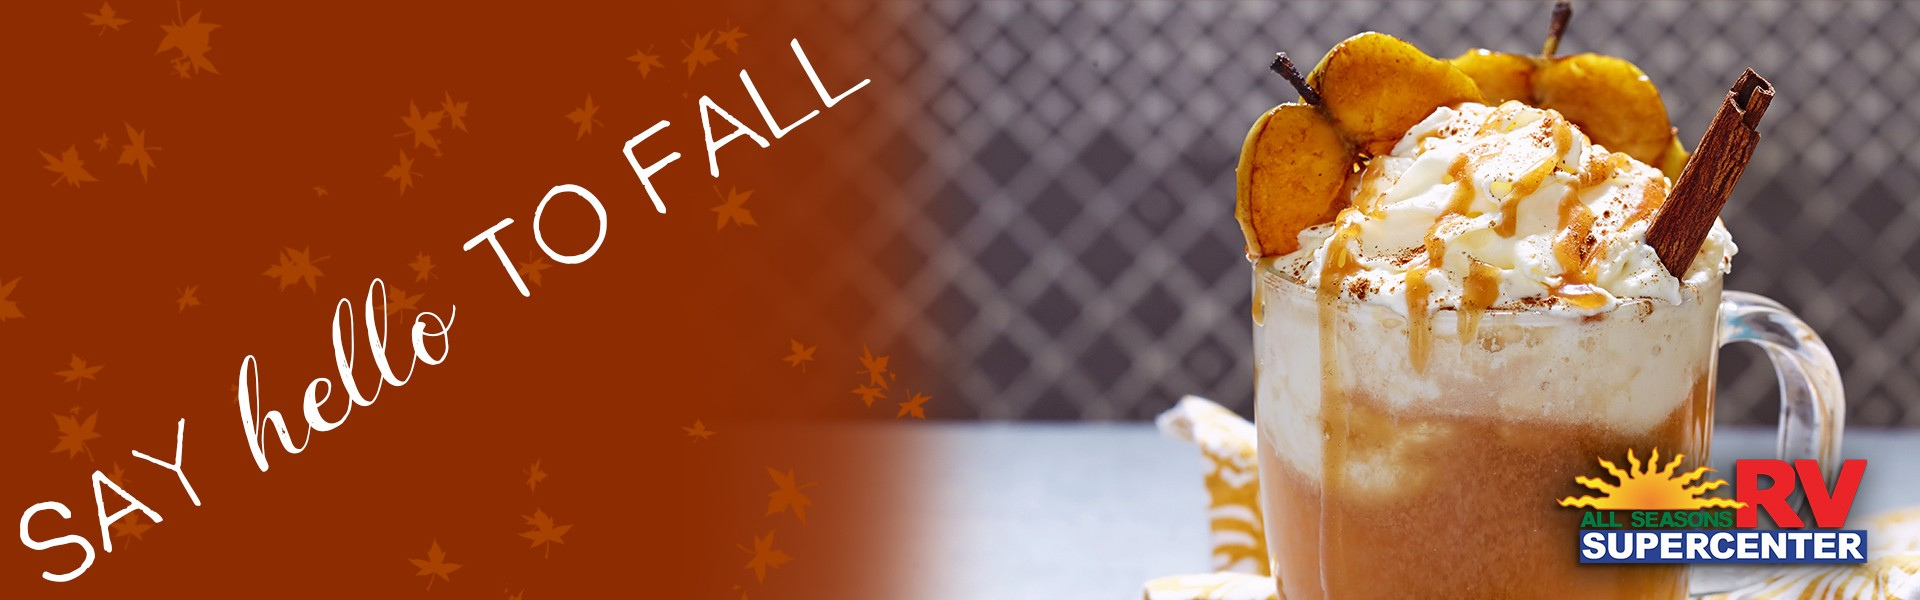 Say hello to fall apple cider float against tile background